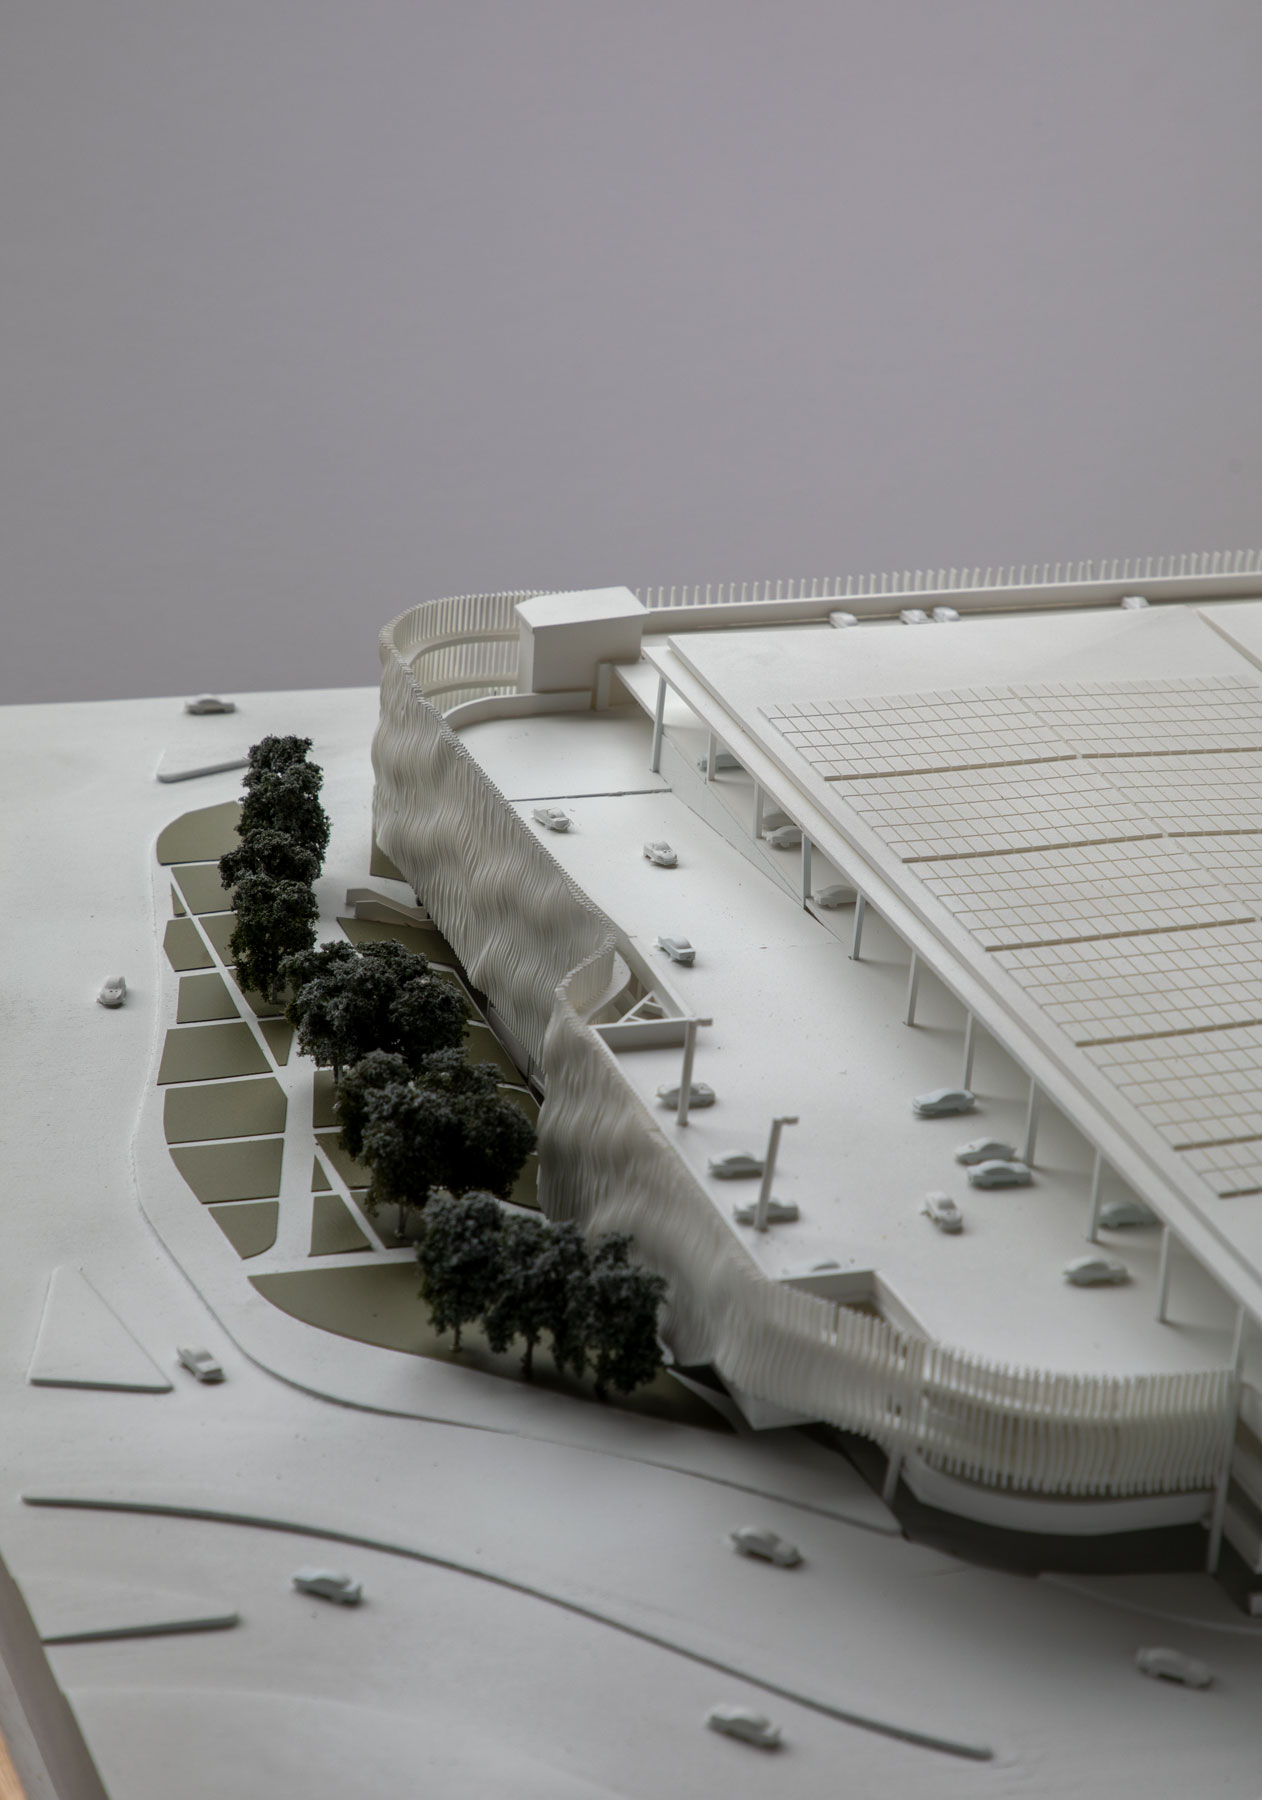 A Monochromatic Presentation Model with a detailed Facade